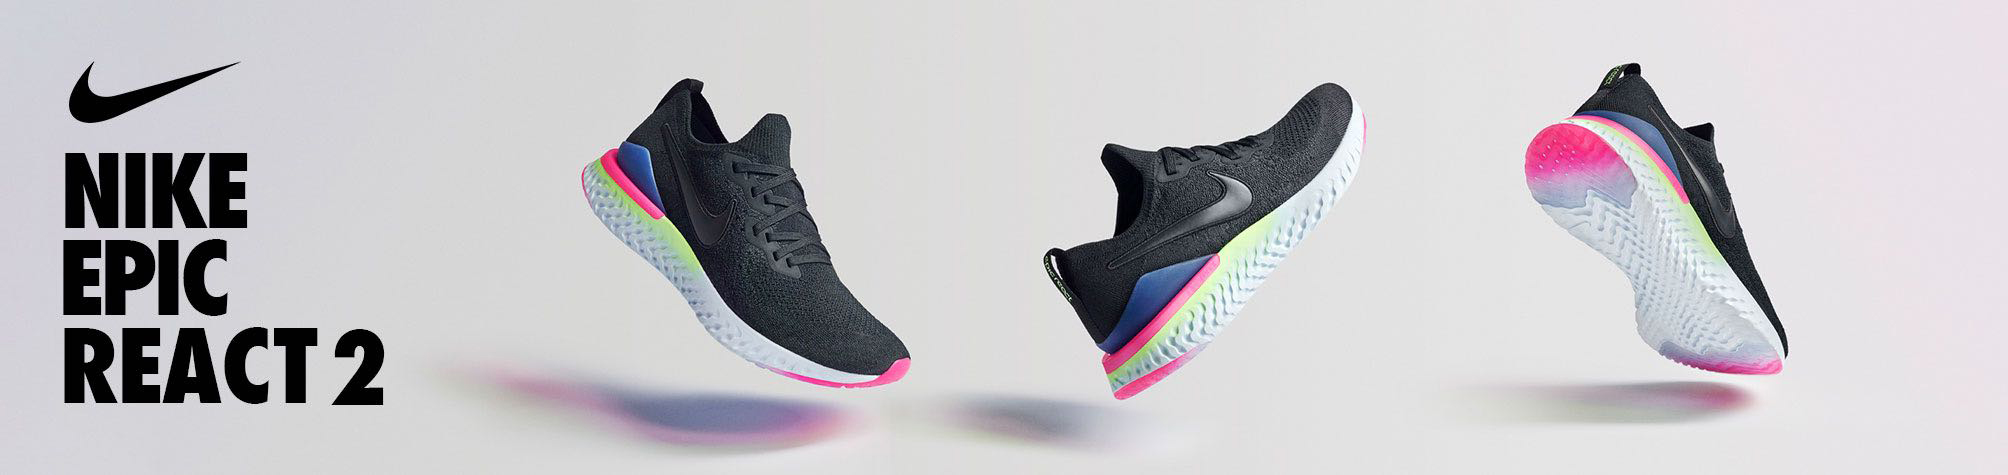 Nike Epic React 2 | Now ultra-soft & ultra-springy